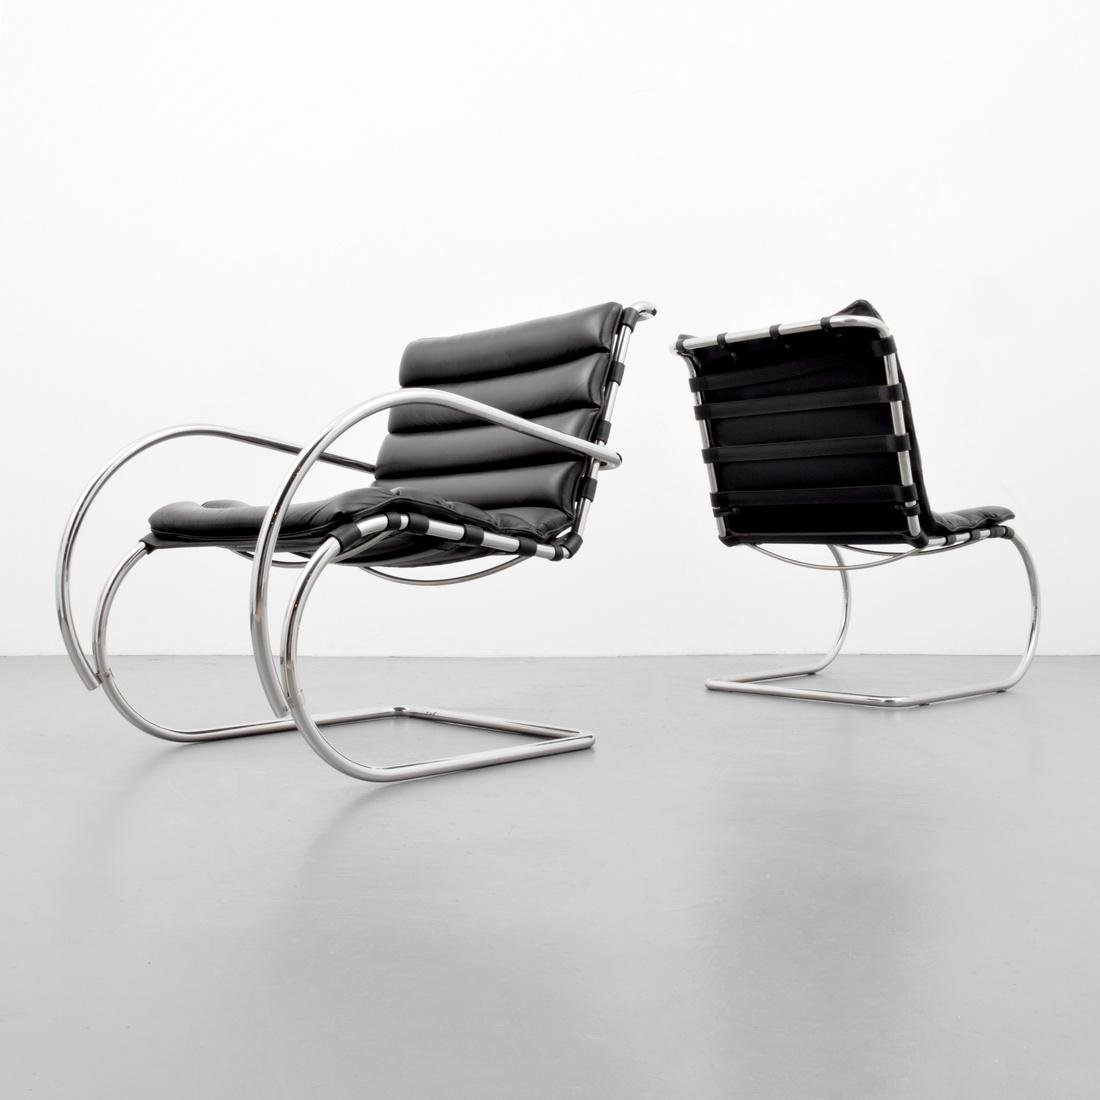 2 Mies Van Der Rohe Cantilever Chairs